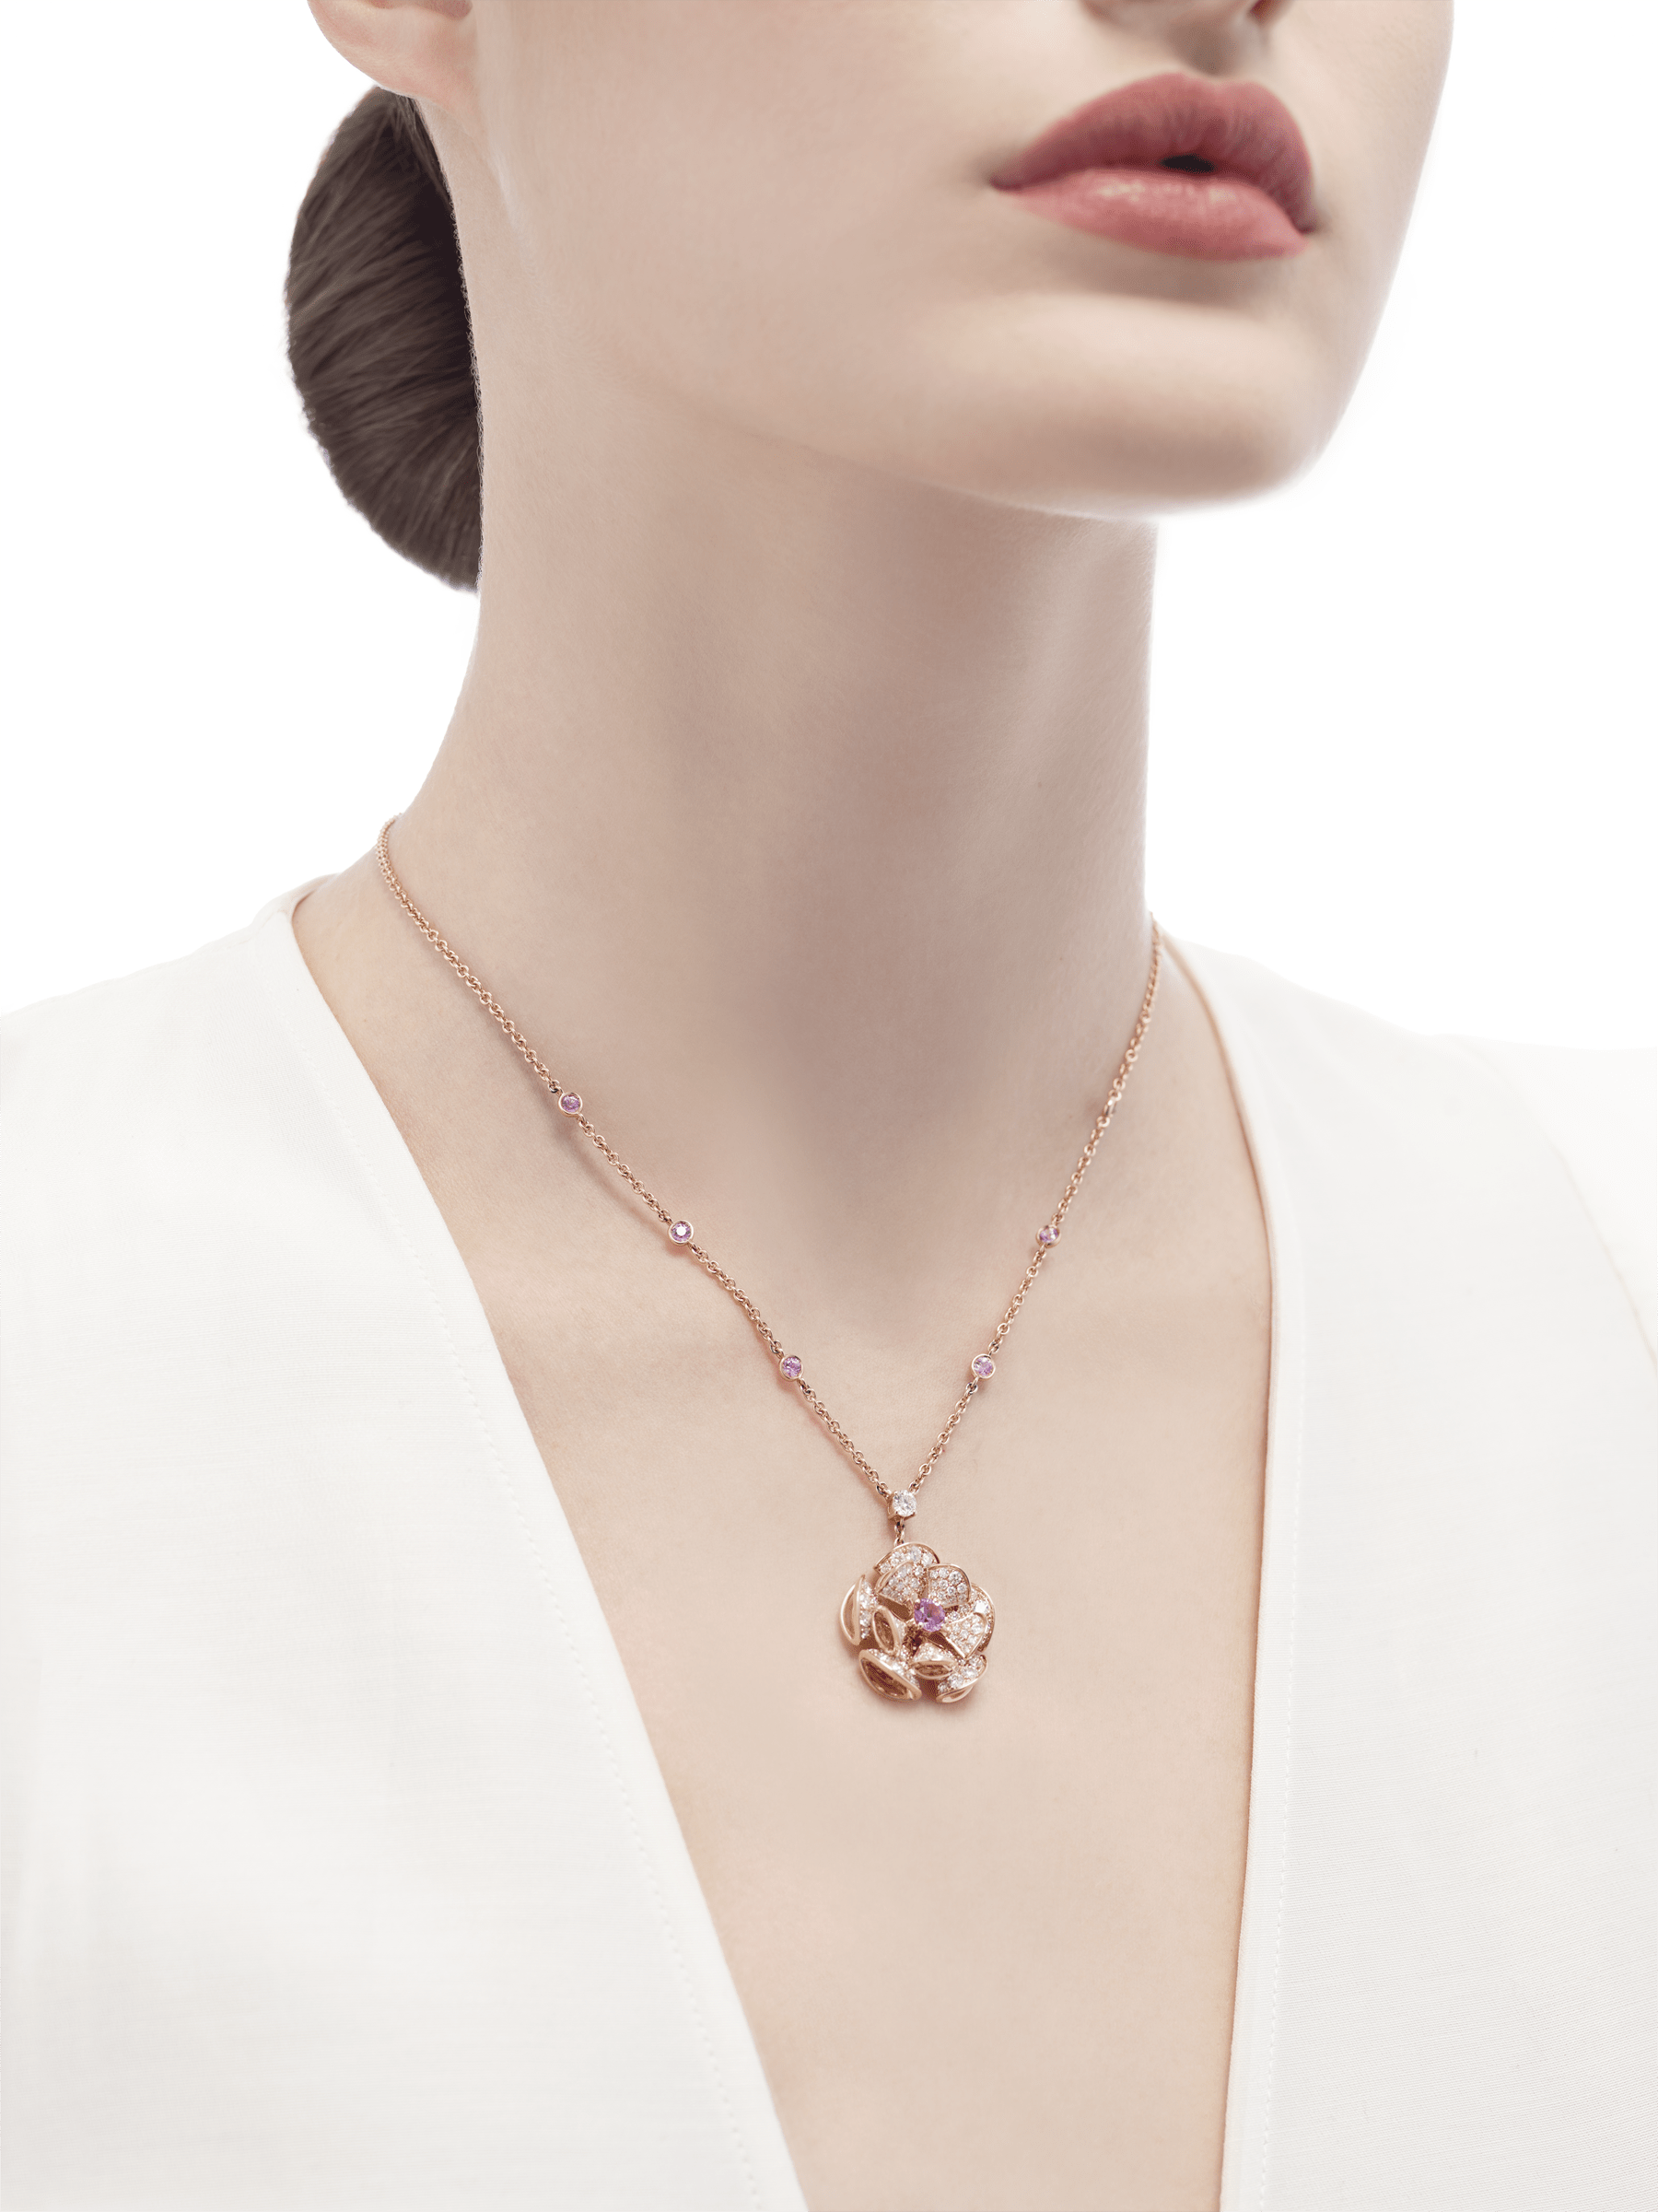 DIVAS' DREAM necklace in 18 kt rose gold with chain set with pink sapphires and a diamond, and with a pendant set with a central pink sapphire and pavé diamonds. 352628 image 4